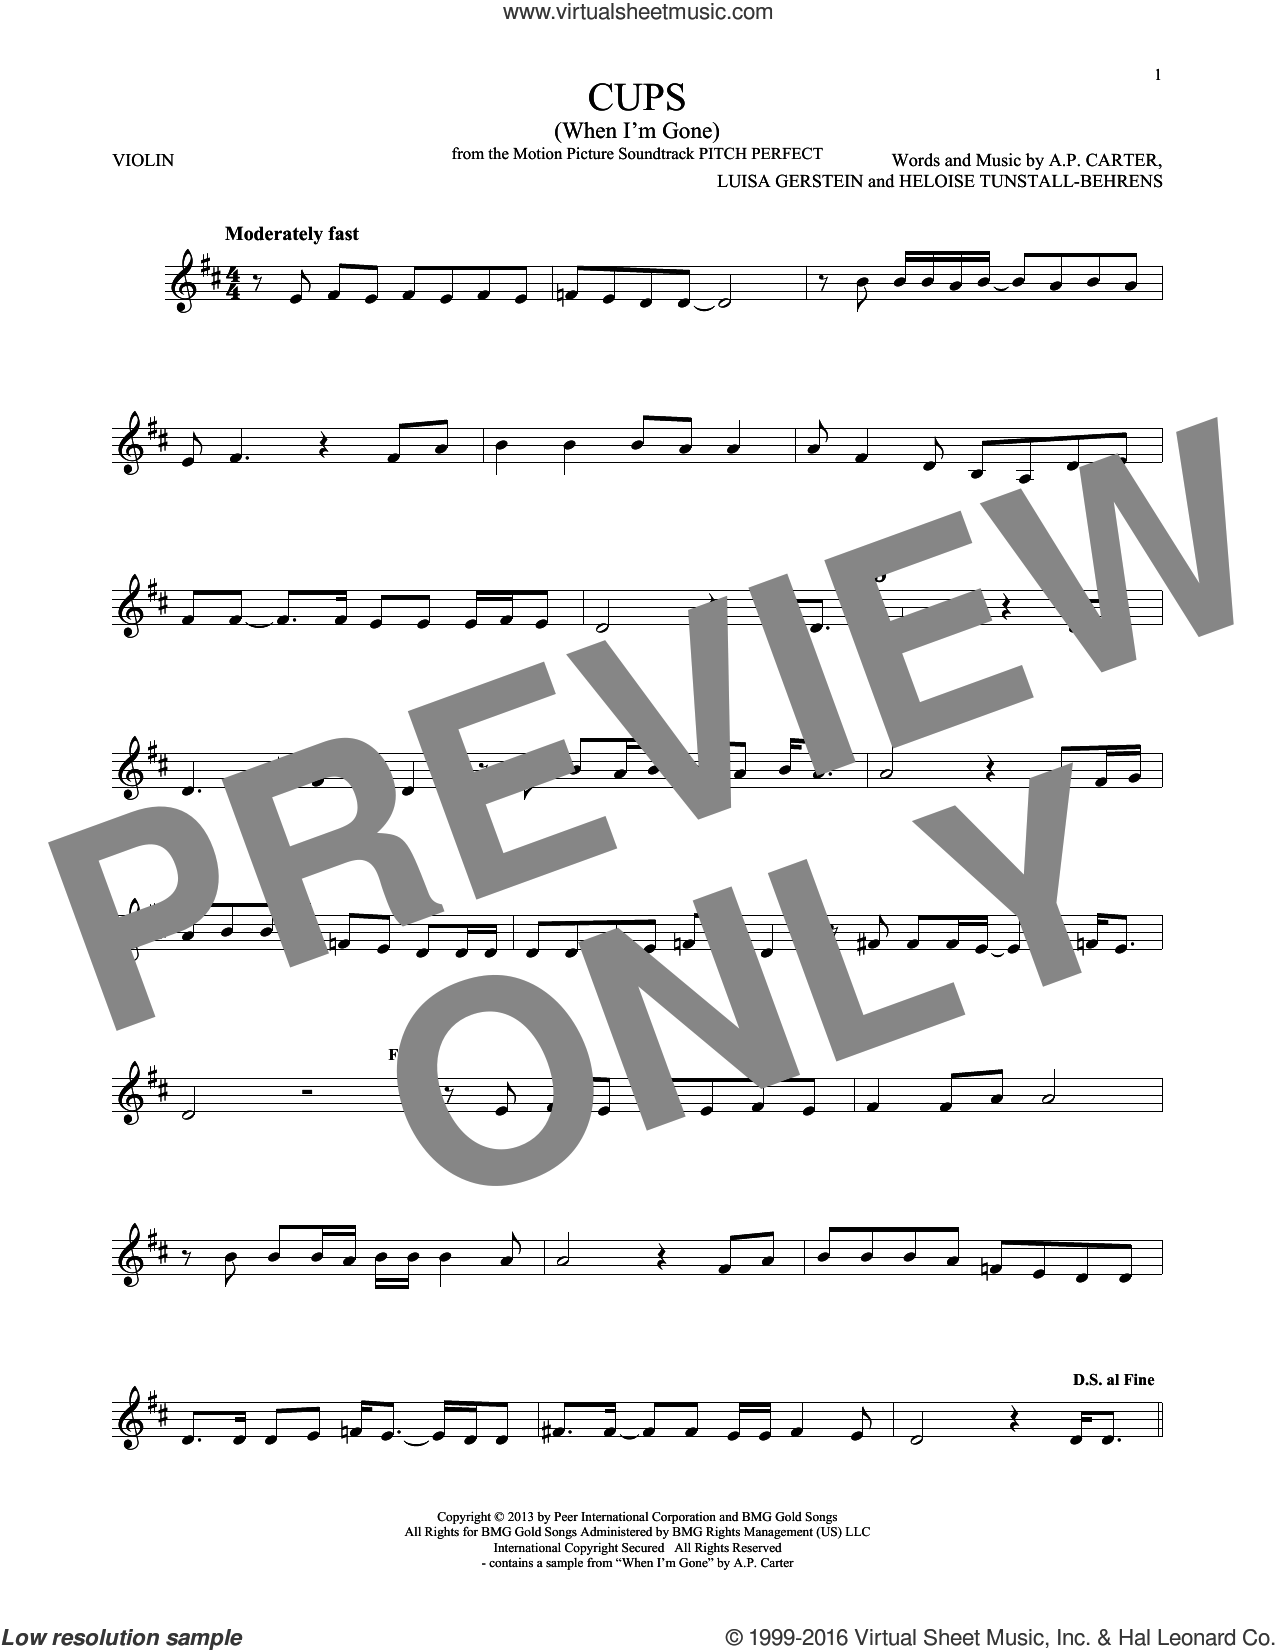 Cups (When I'm Gone) sheet music for violin solo by Anna Kendrick, A.P. Carter, Heloise Tunstall-Behrens and Luisa Gerstein, intermediate skill level